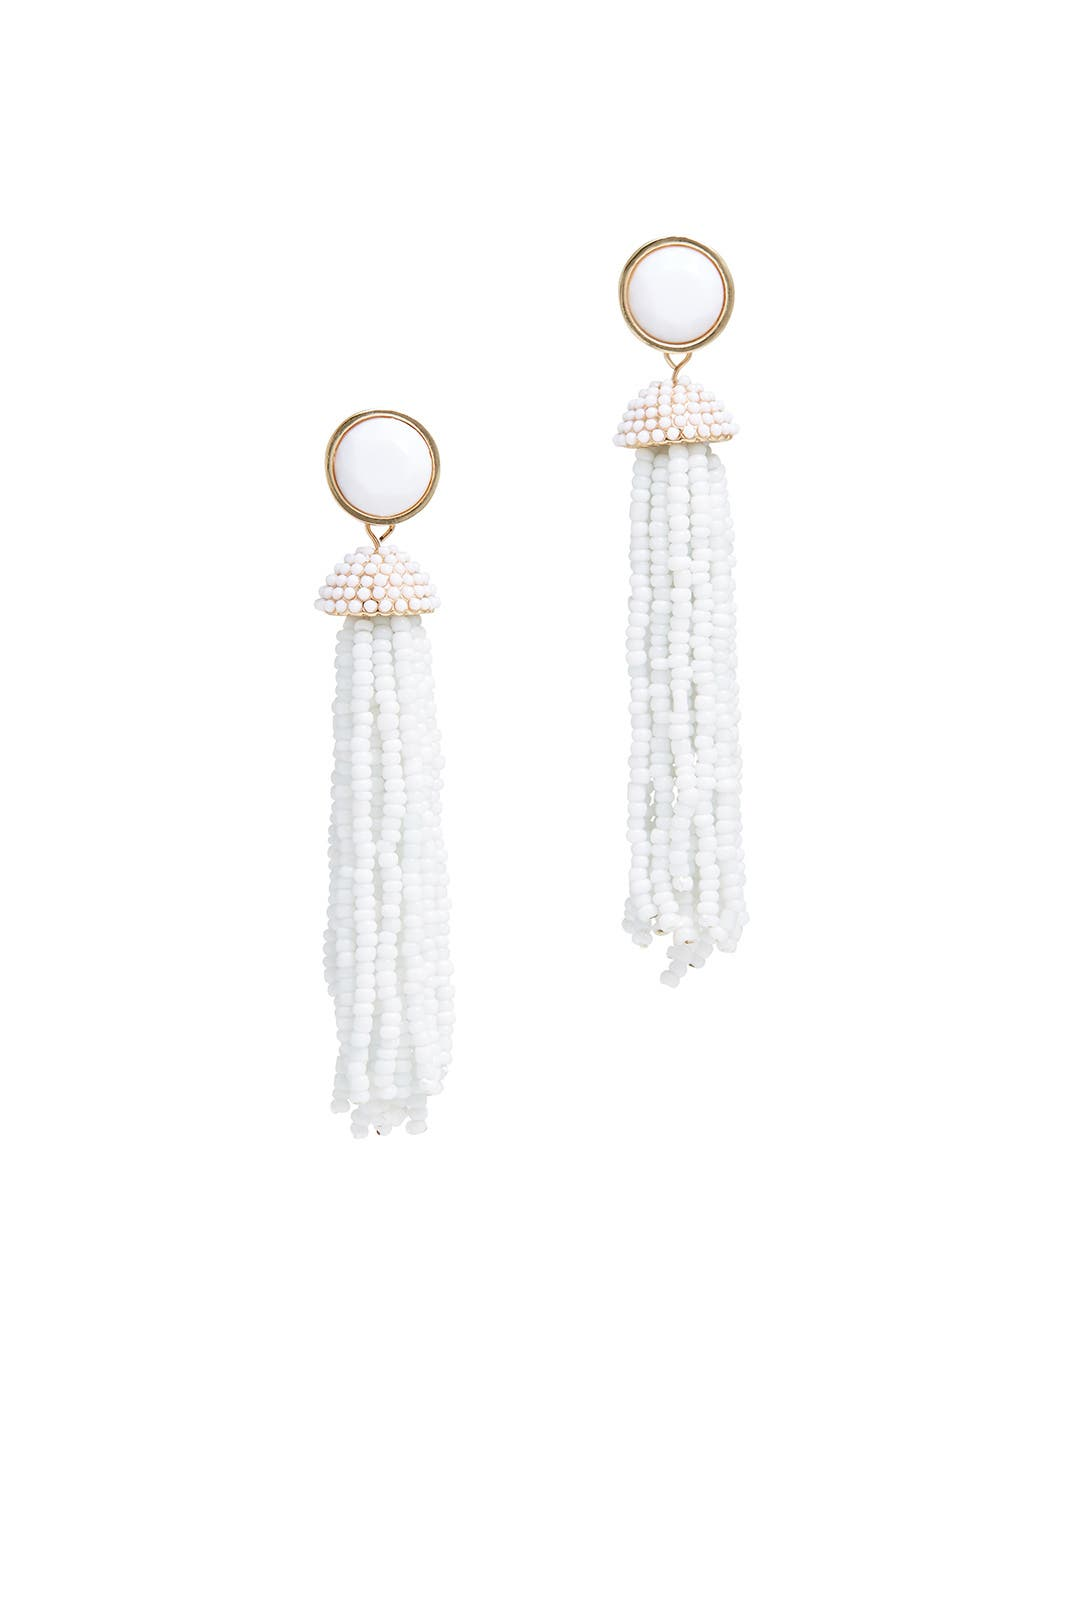 White Beaded Tassel Earrings By Slate & Willow Accessories For $8  Rent  The Runway